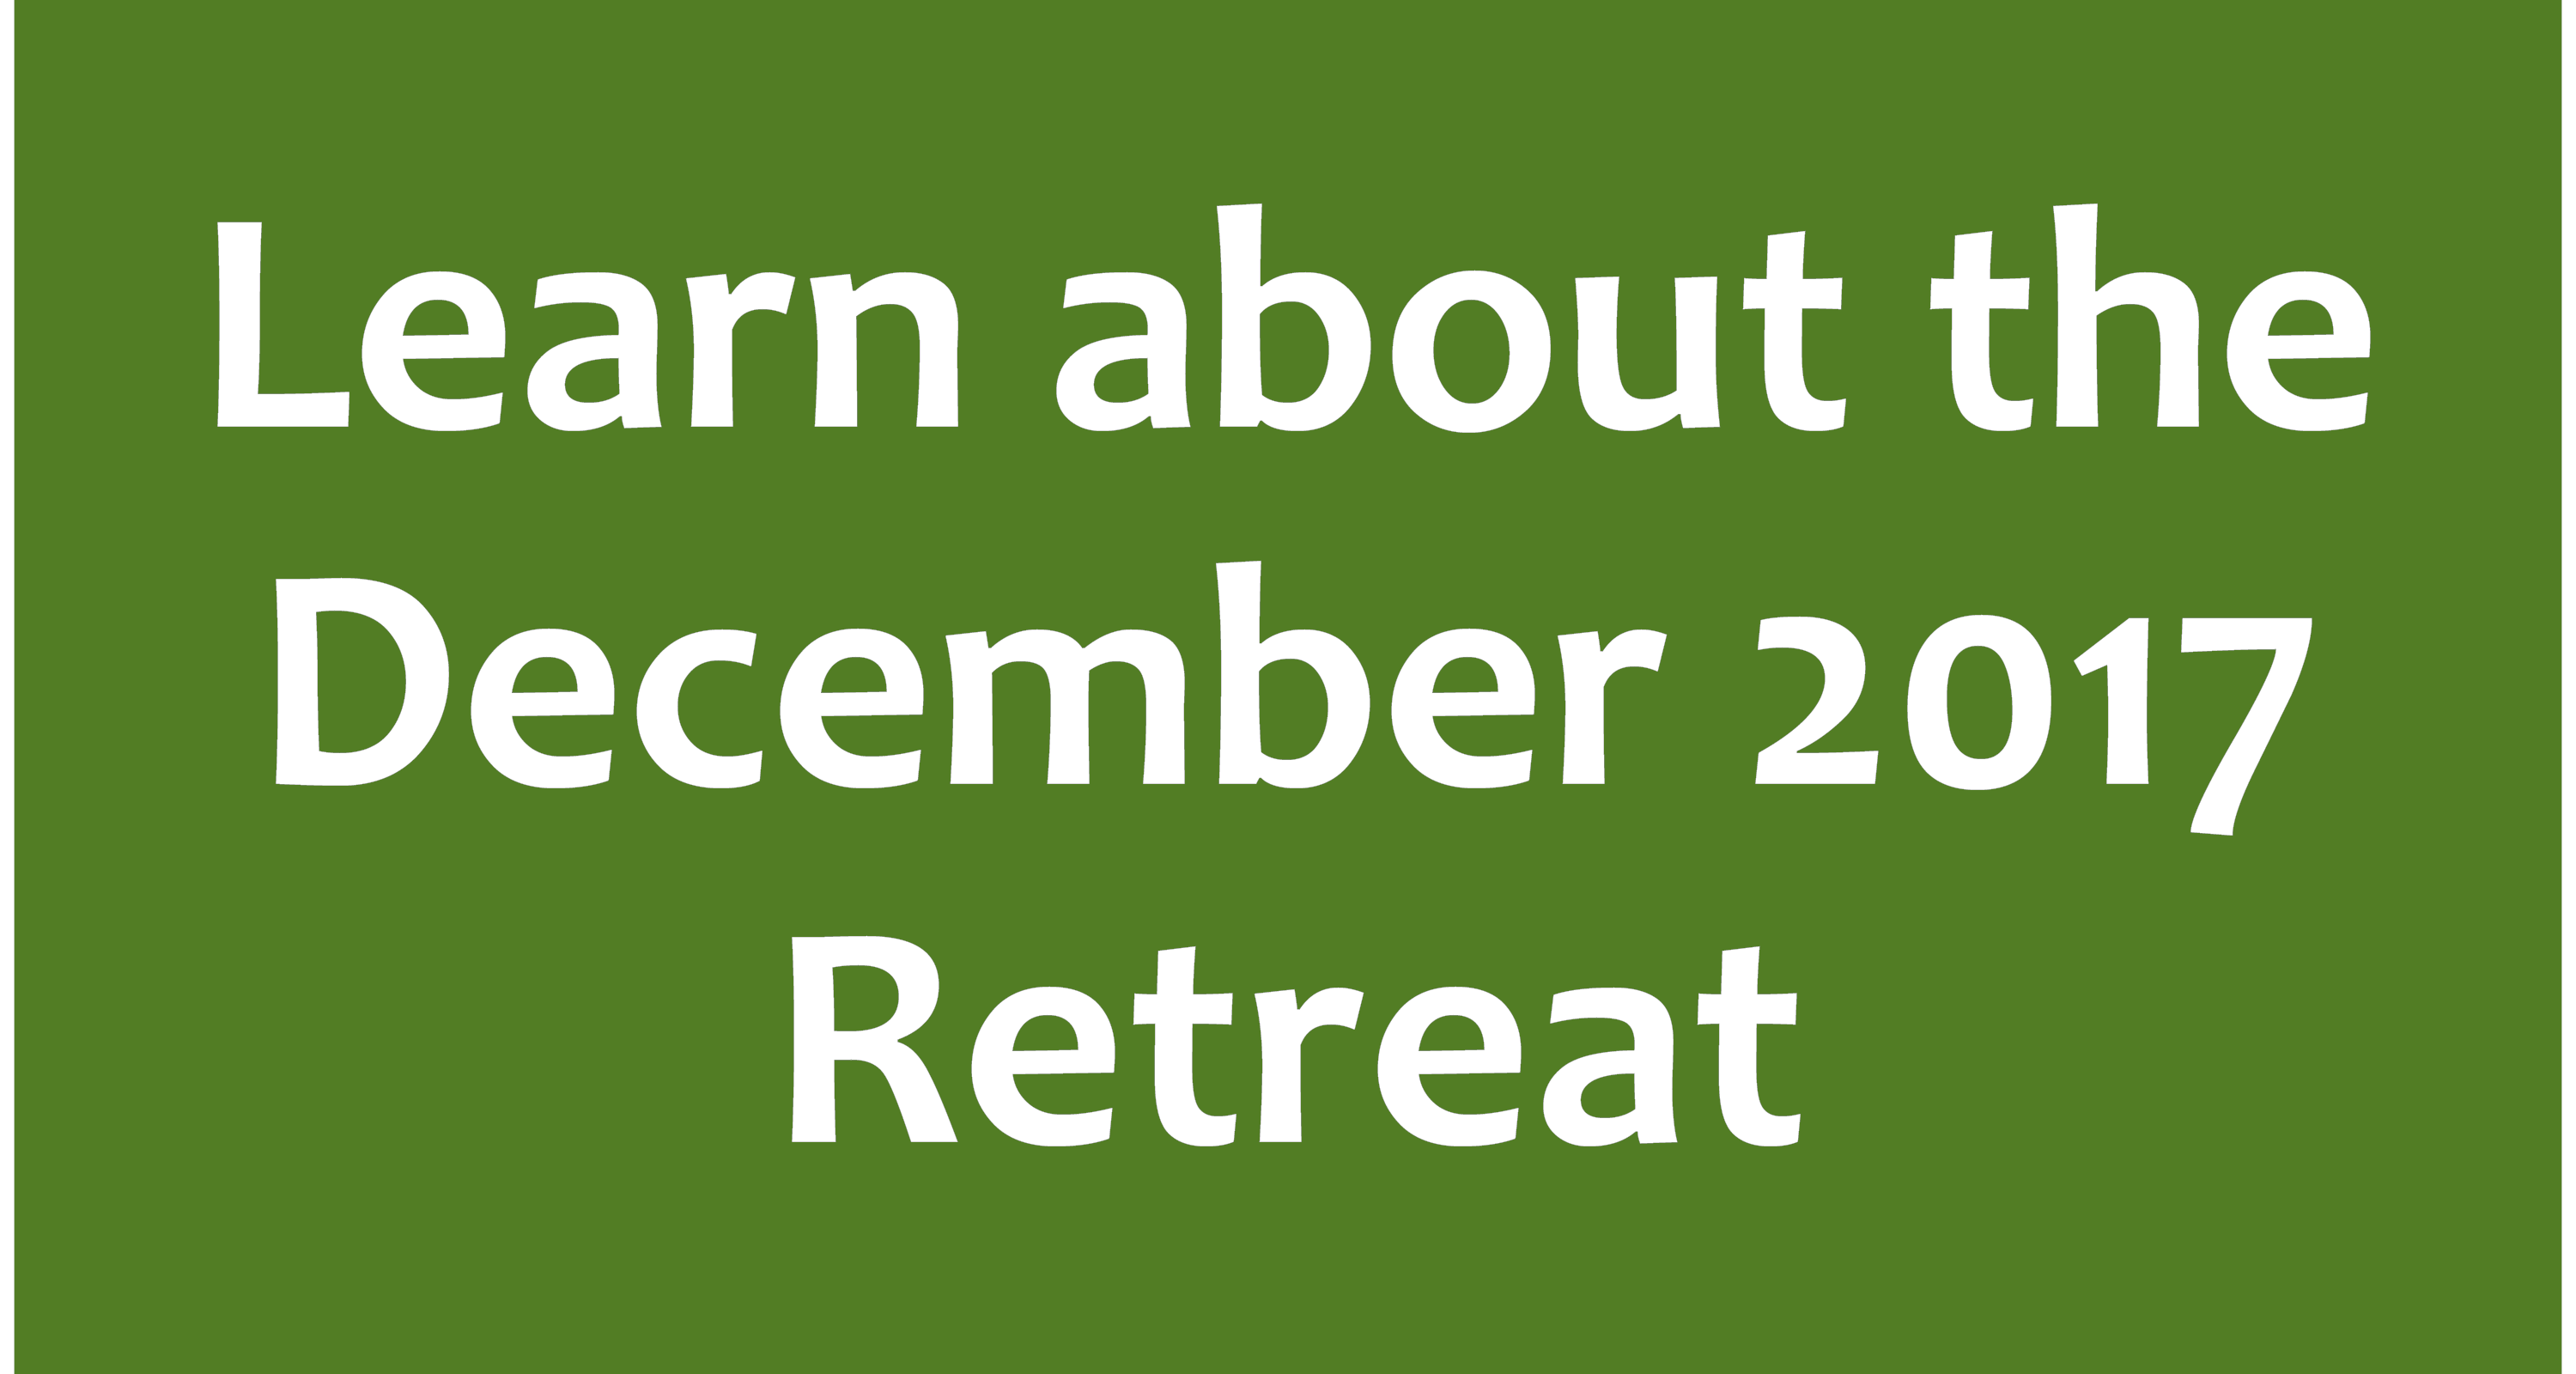 Learn about the December 2017 Retreat